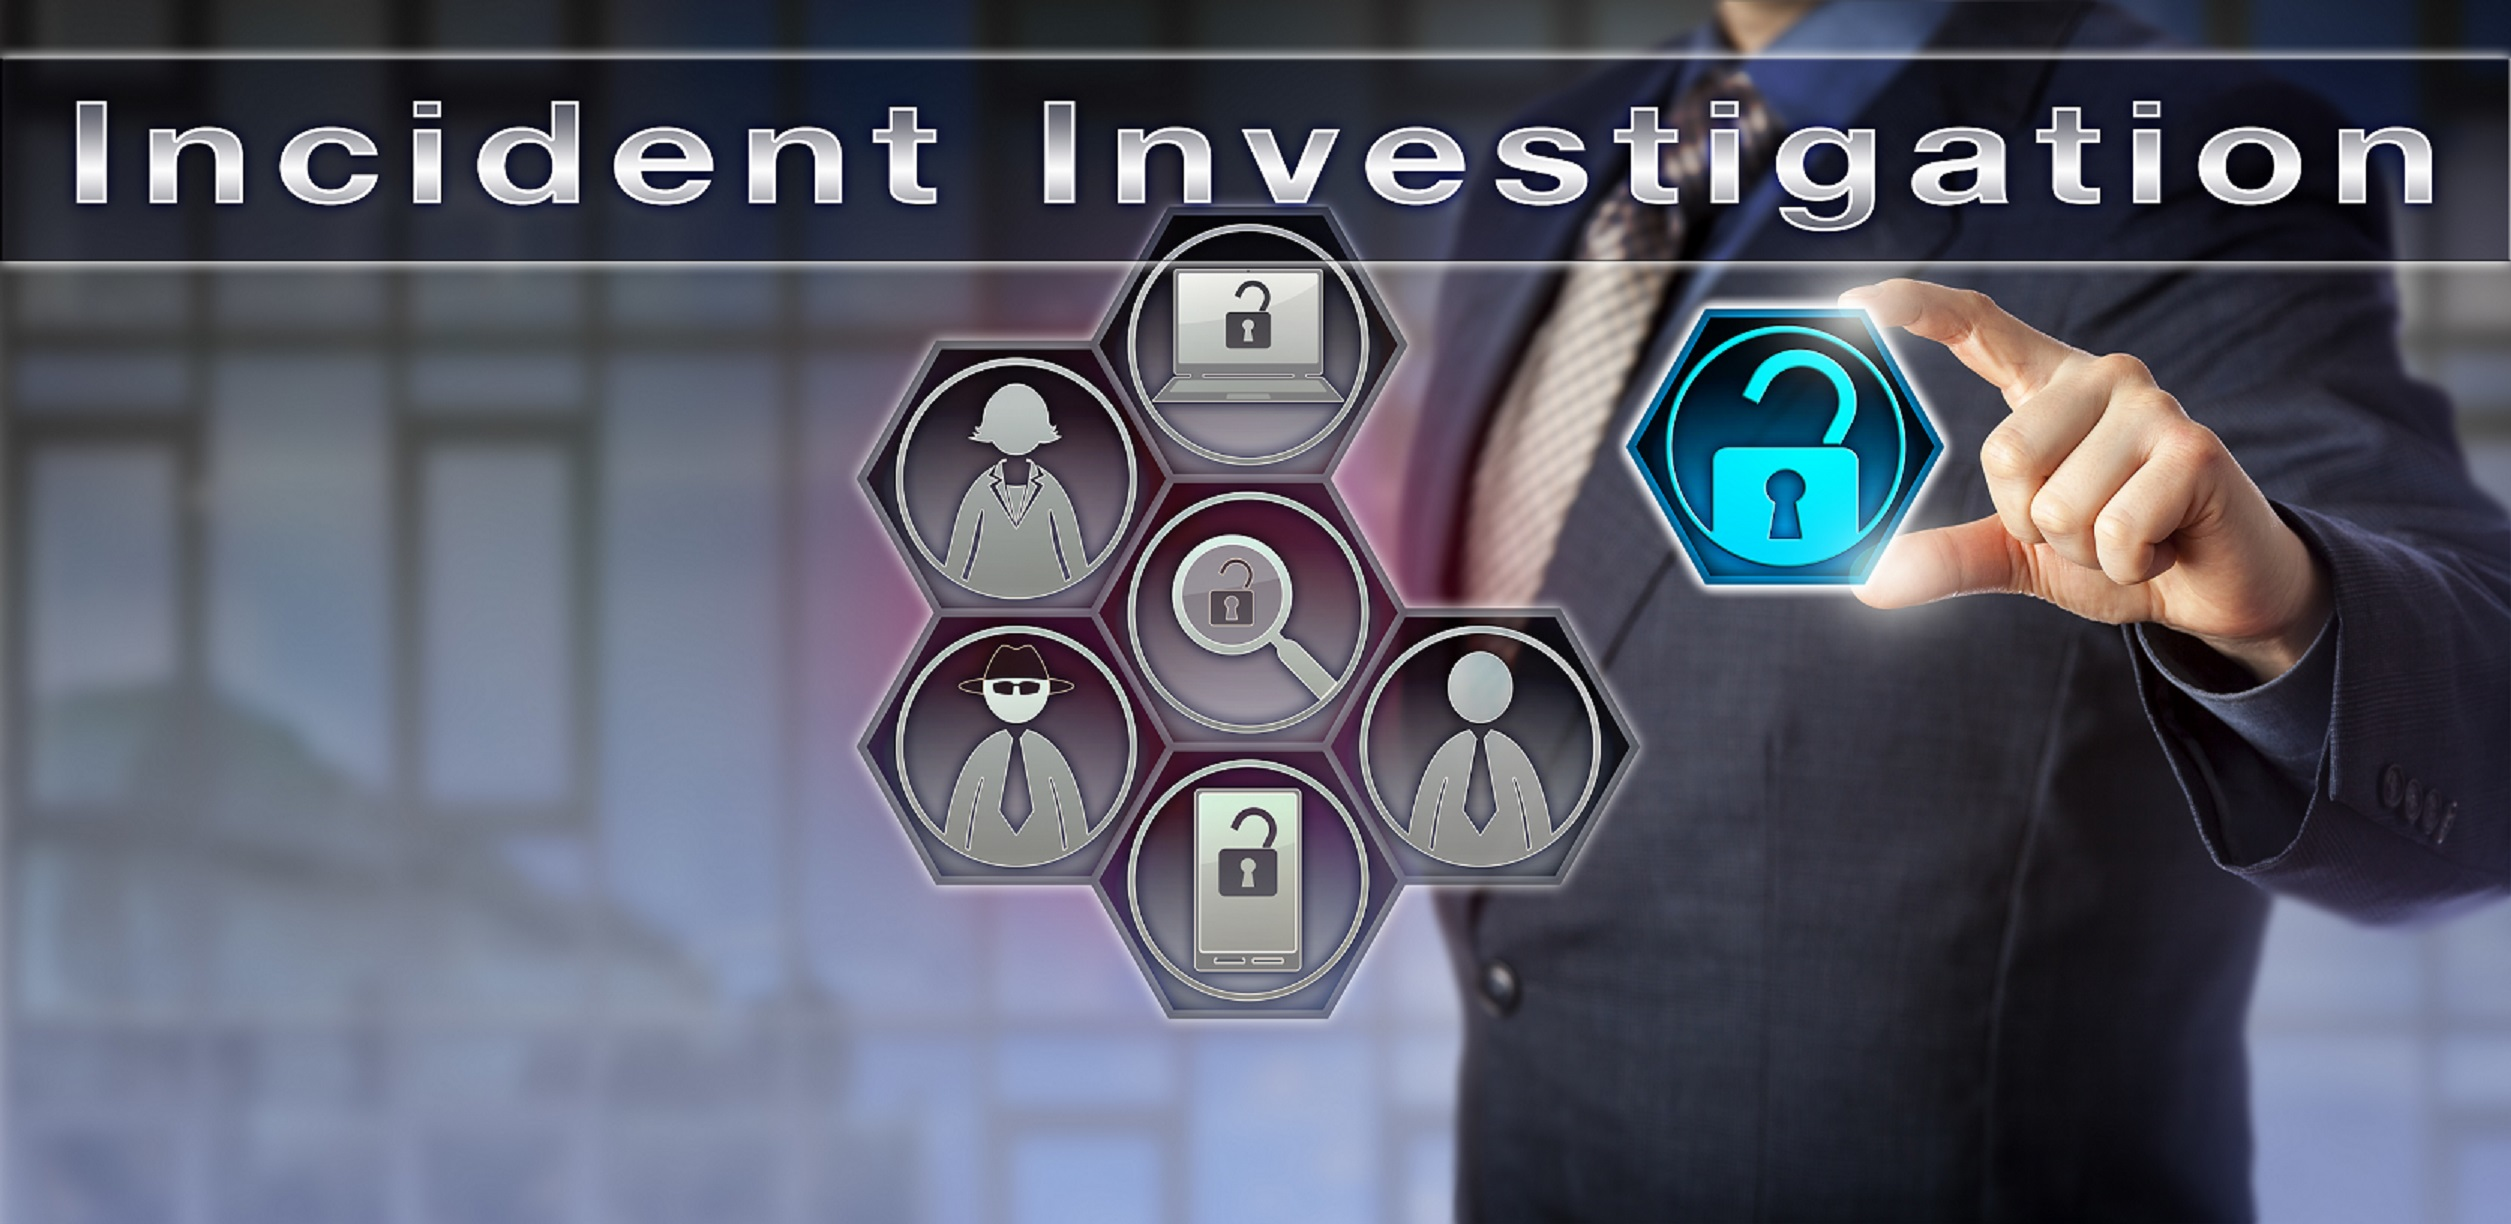 Incident investigations are part of a comprehensive occupational safety and health program.